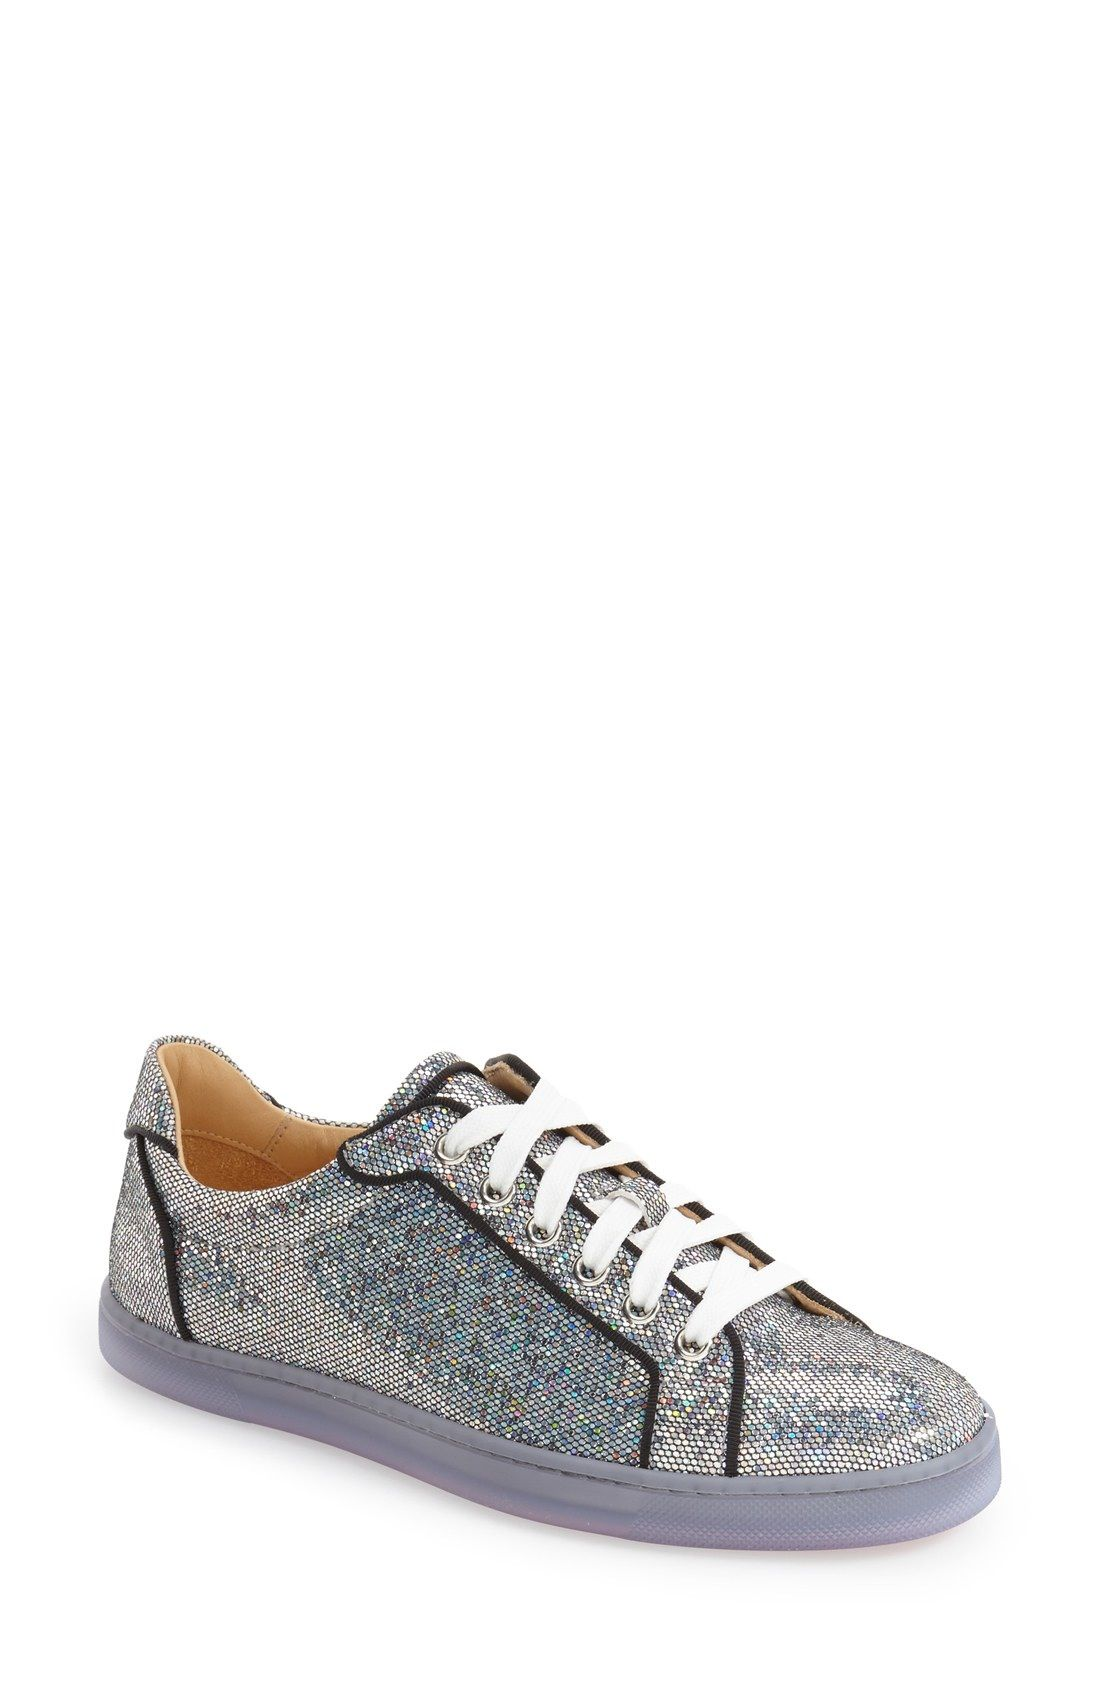 differently 61a0c 94968 Christian Louboutin 'Seava' Disco Ball Glitter Sneaker ...